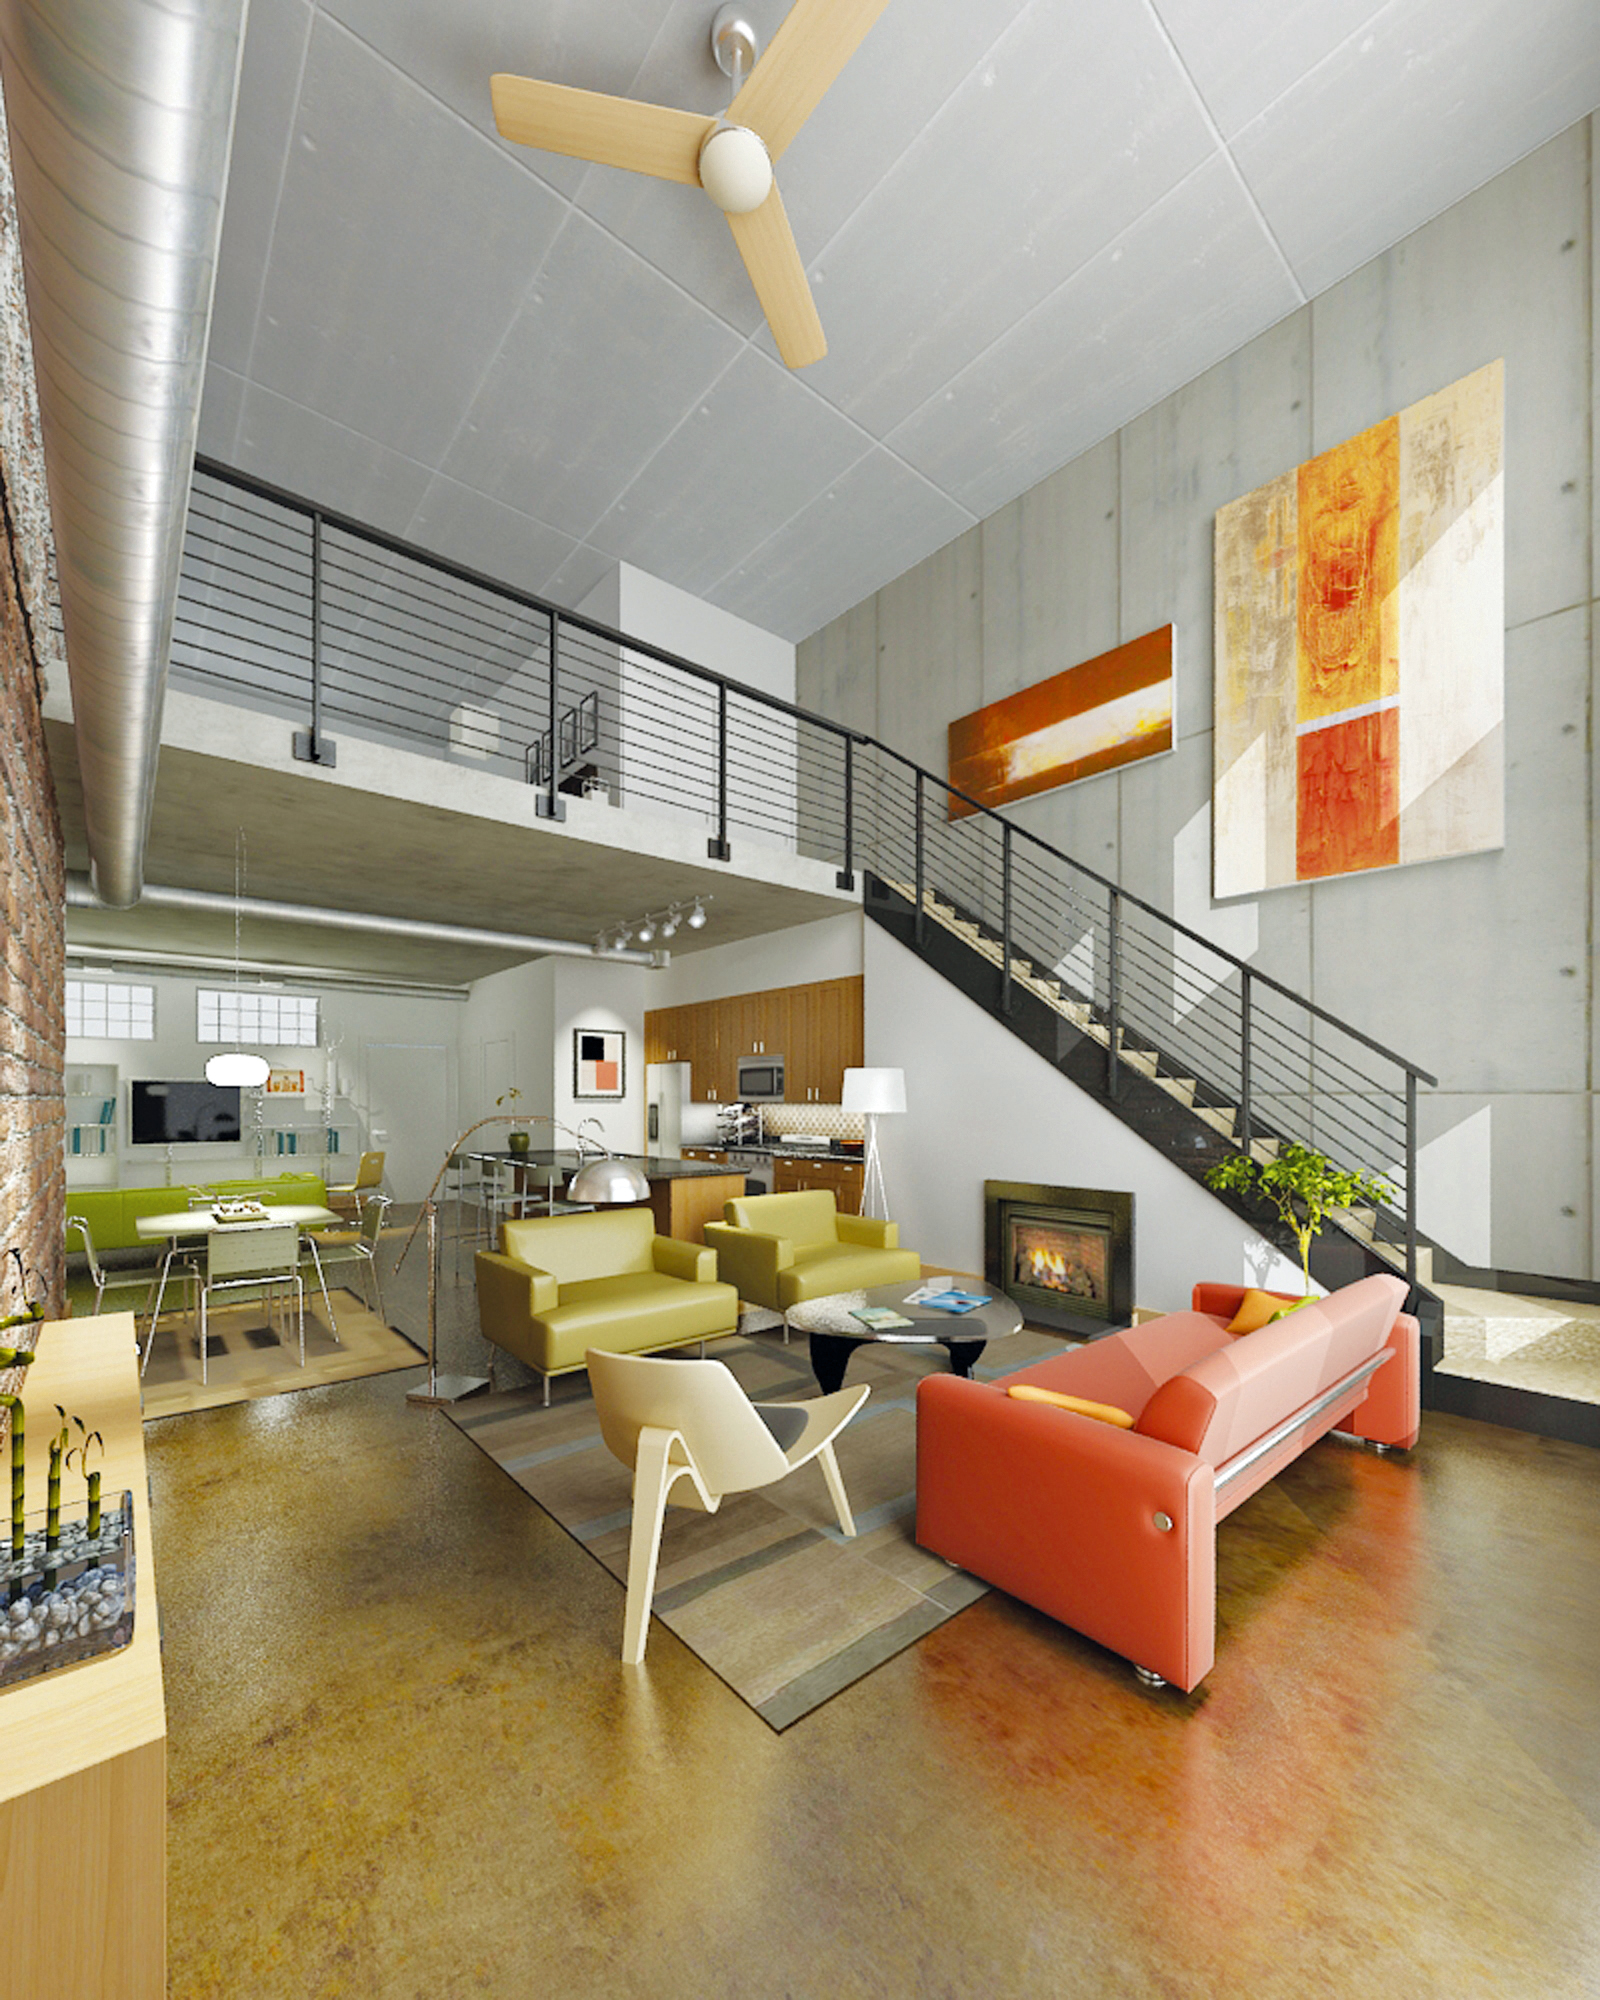 Front Street Lofts kick off Lemont's redevelopment